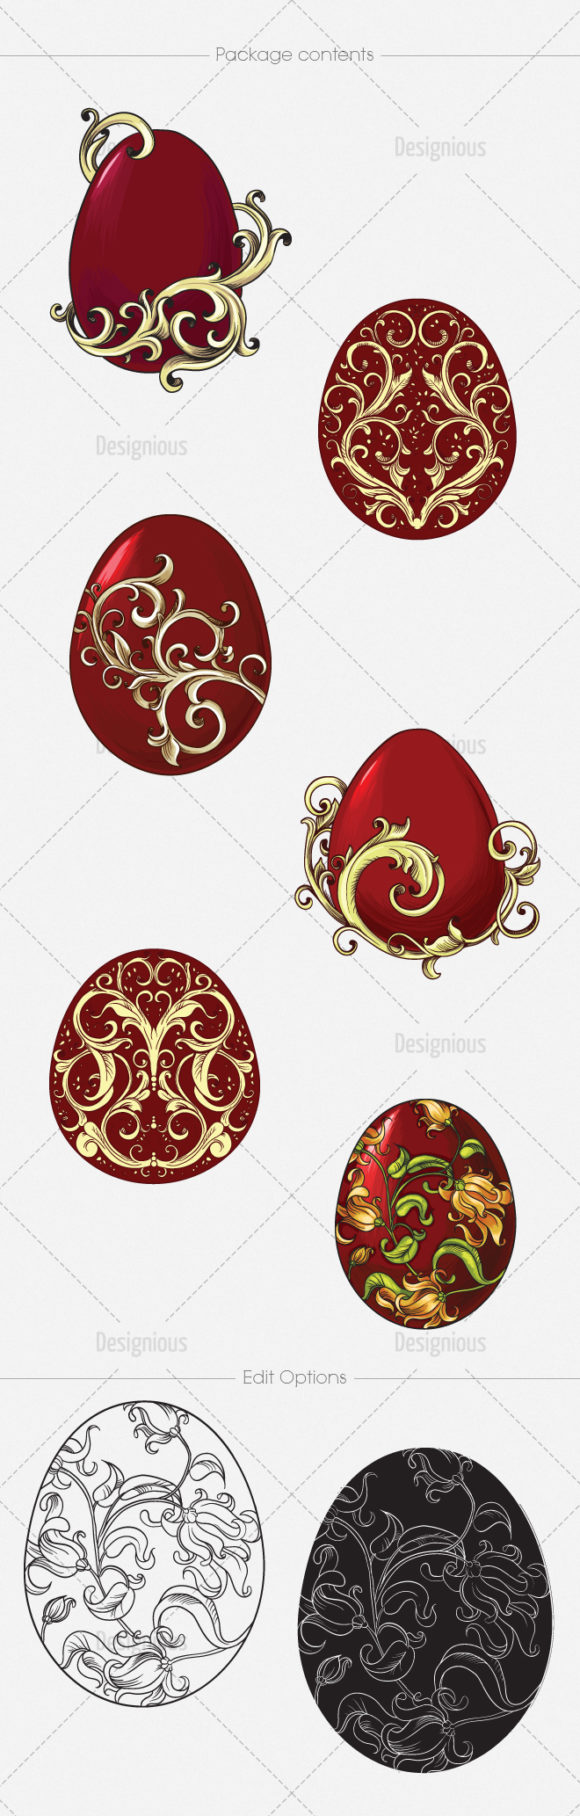 Easter Vector Pack 1 6